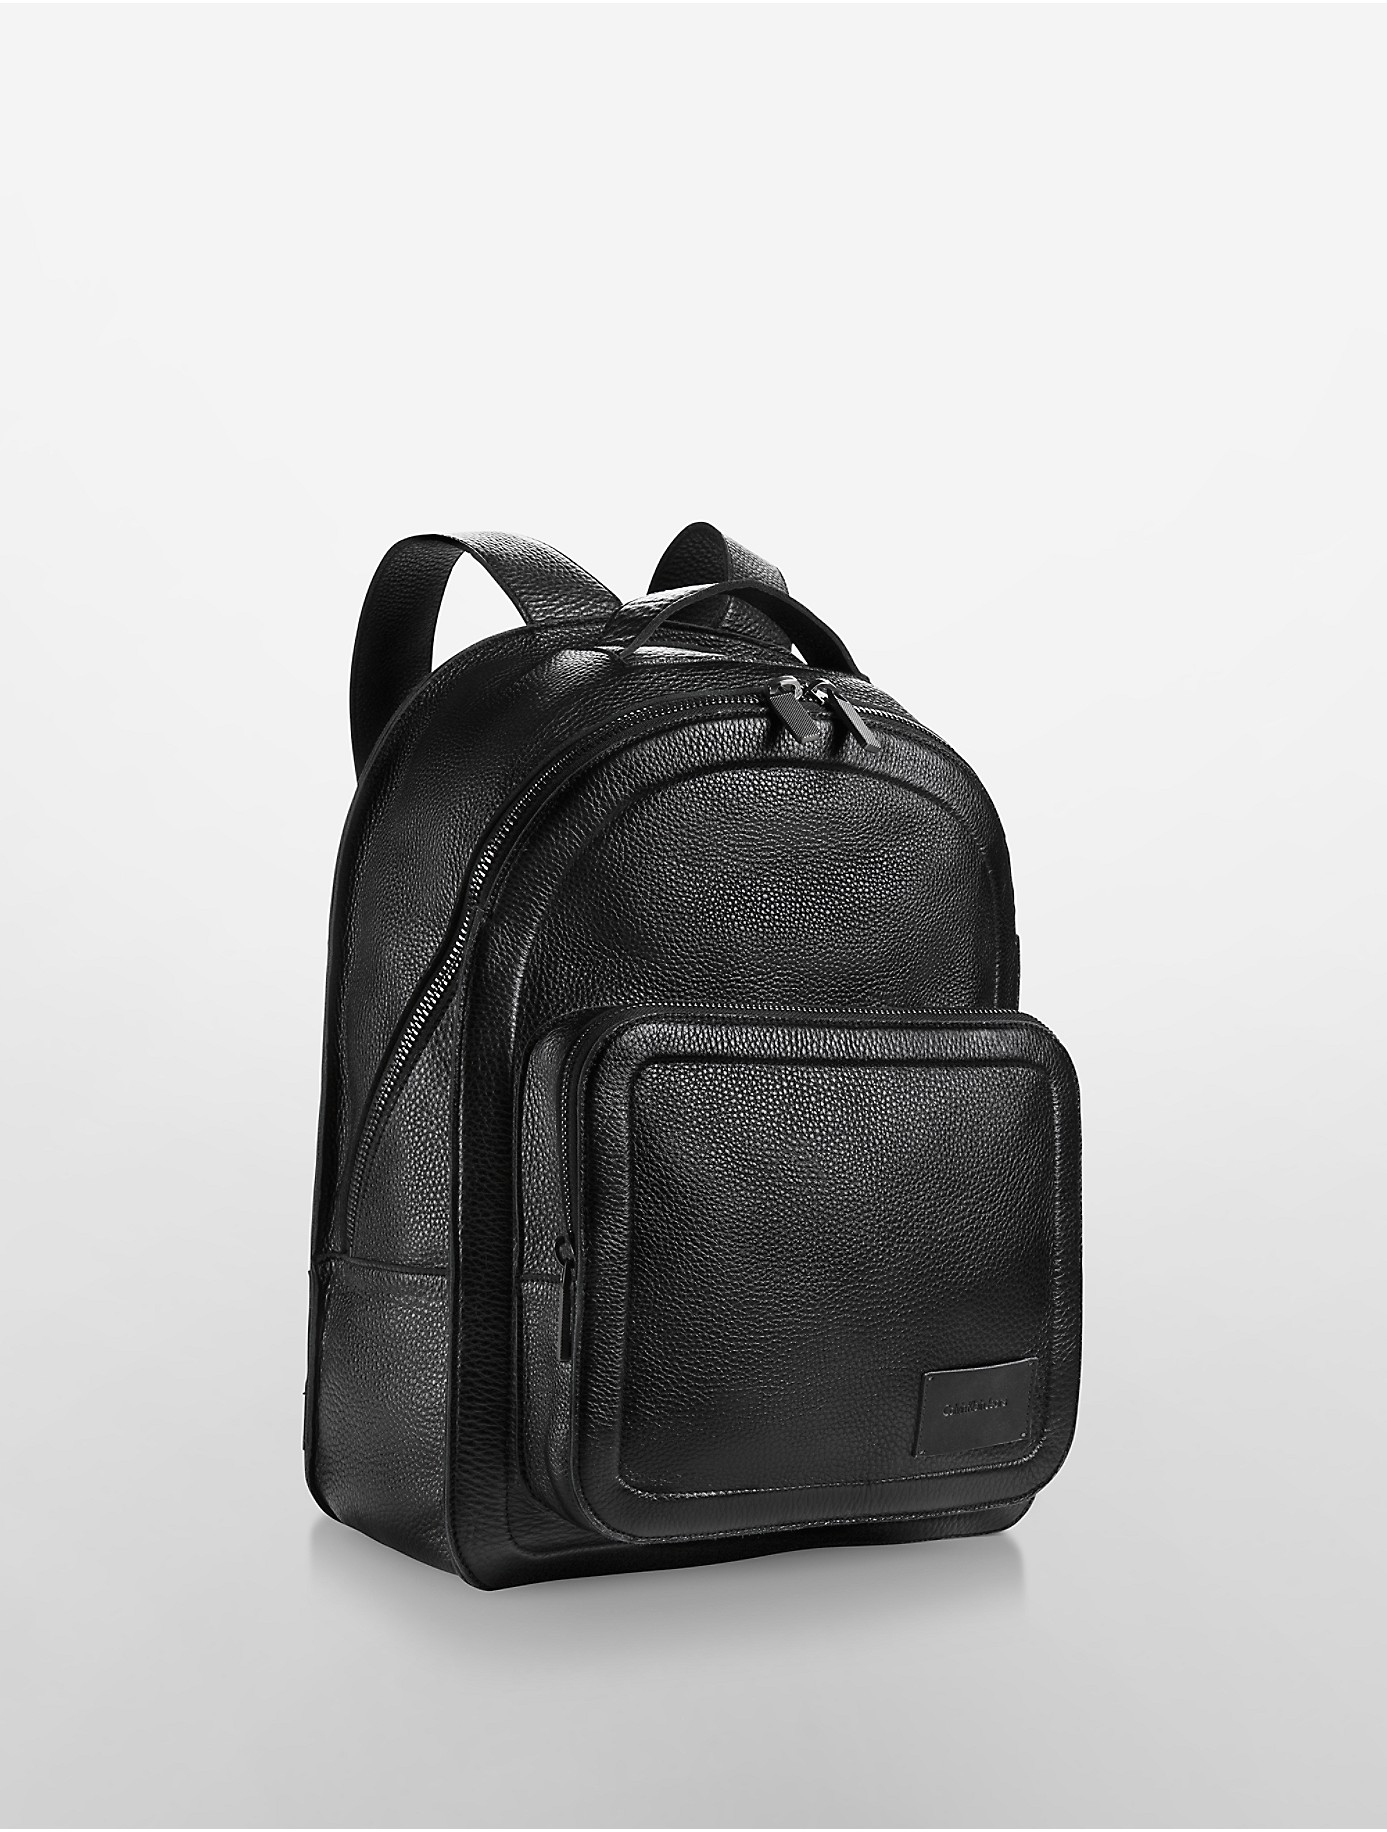 96f123898017 Lyst - Calvin Klein Jeans Infinite Leather Backpack in Black